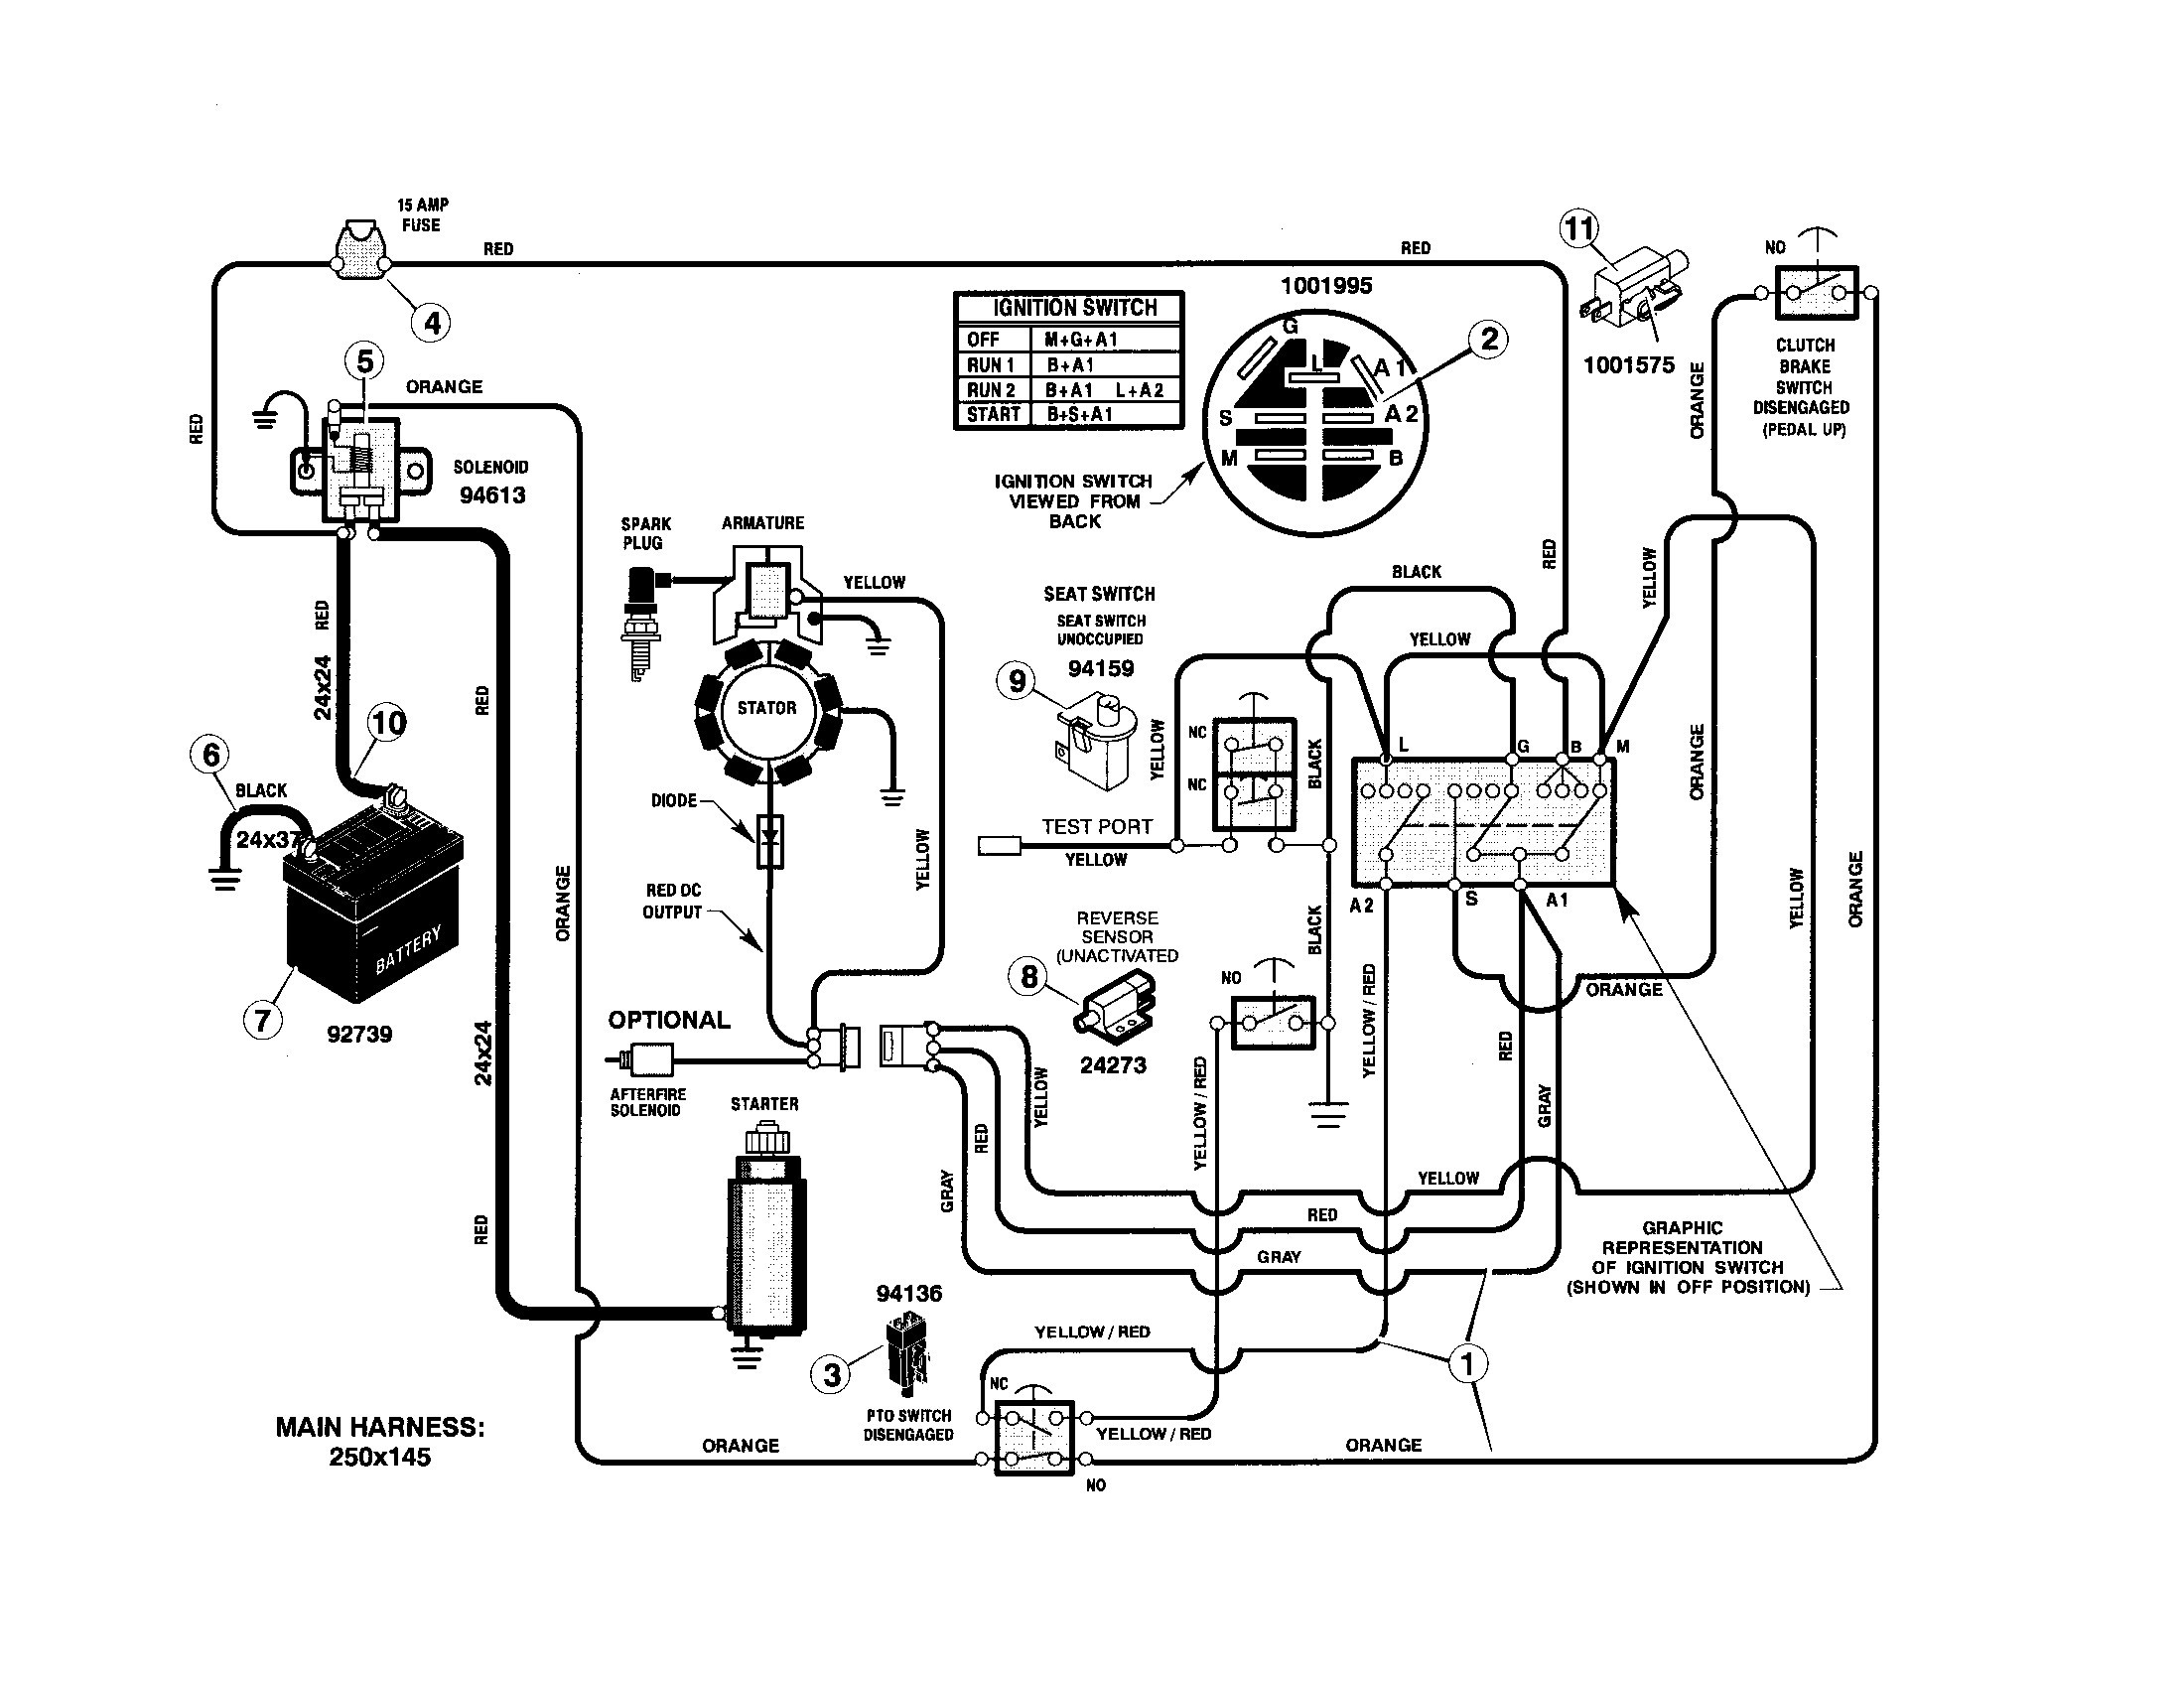 toro zero turn wiring diagram wiring diagram  toro z master zero turn wiring diagram 550 #12